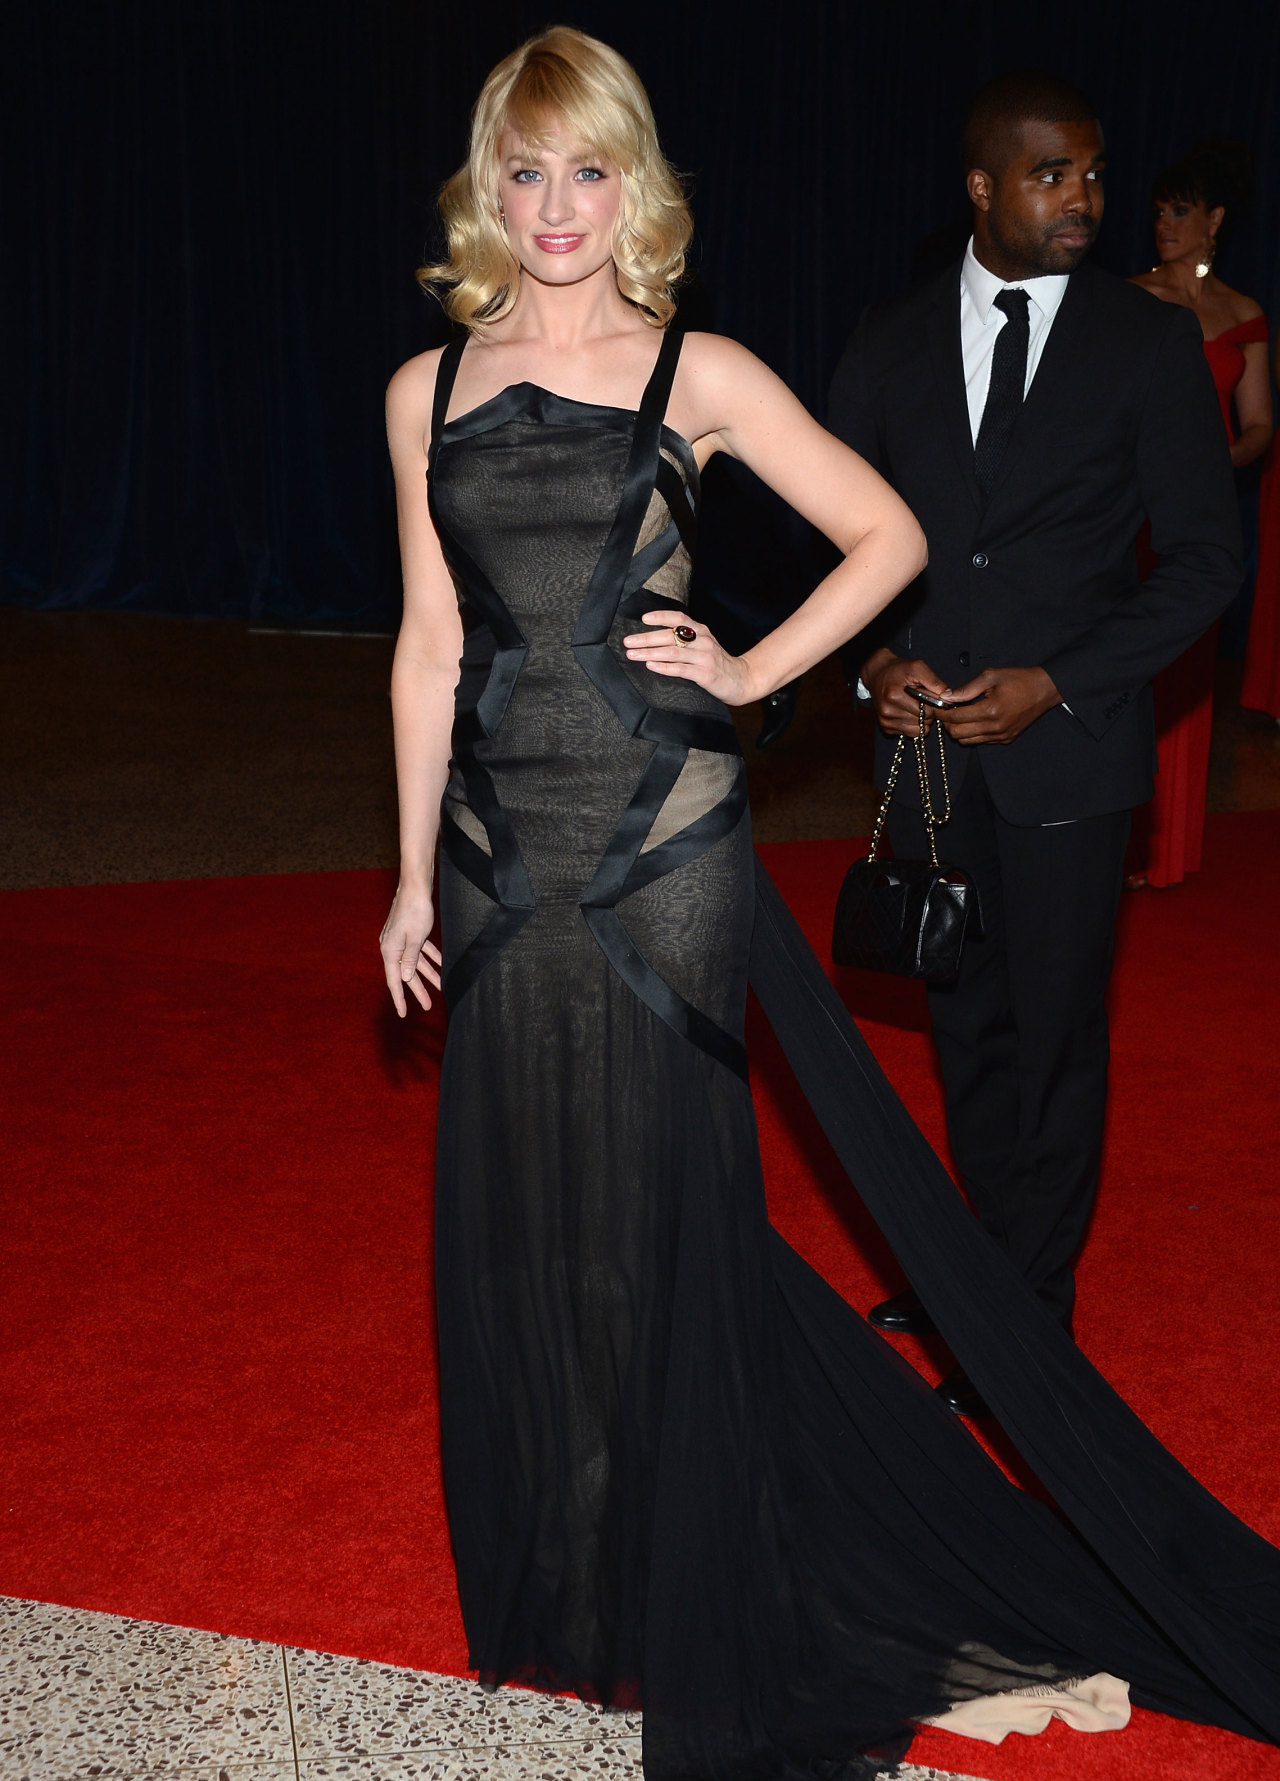 BETH BEHRS  Actress Beth Behrs wore Donna Karan Atelier to the White House Correspondents' Association Dinner at the Washington Hilton on April 27, 2013 in Washington, DC. Photo by Dimitrios Kambouris/Getty Images